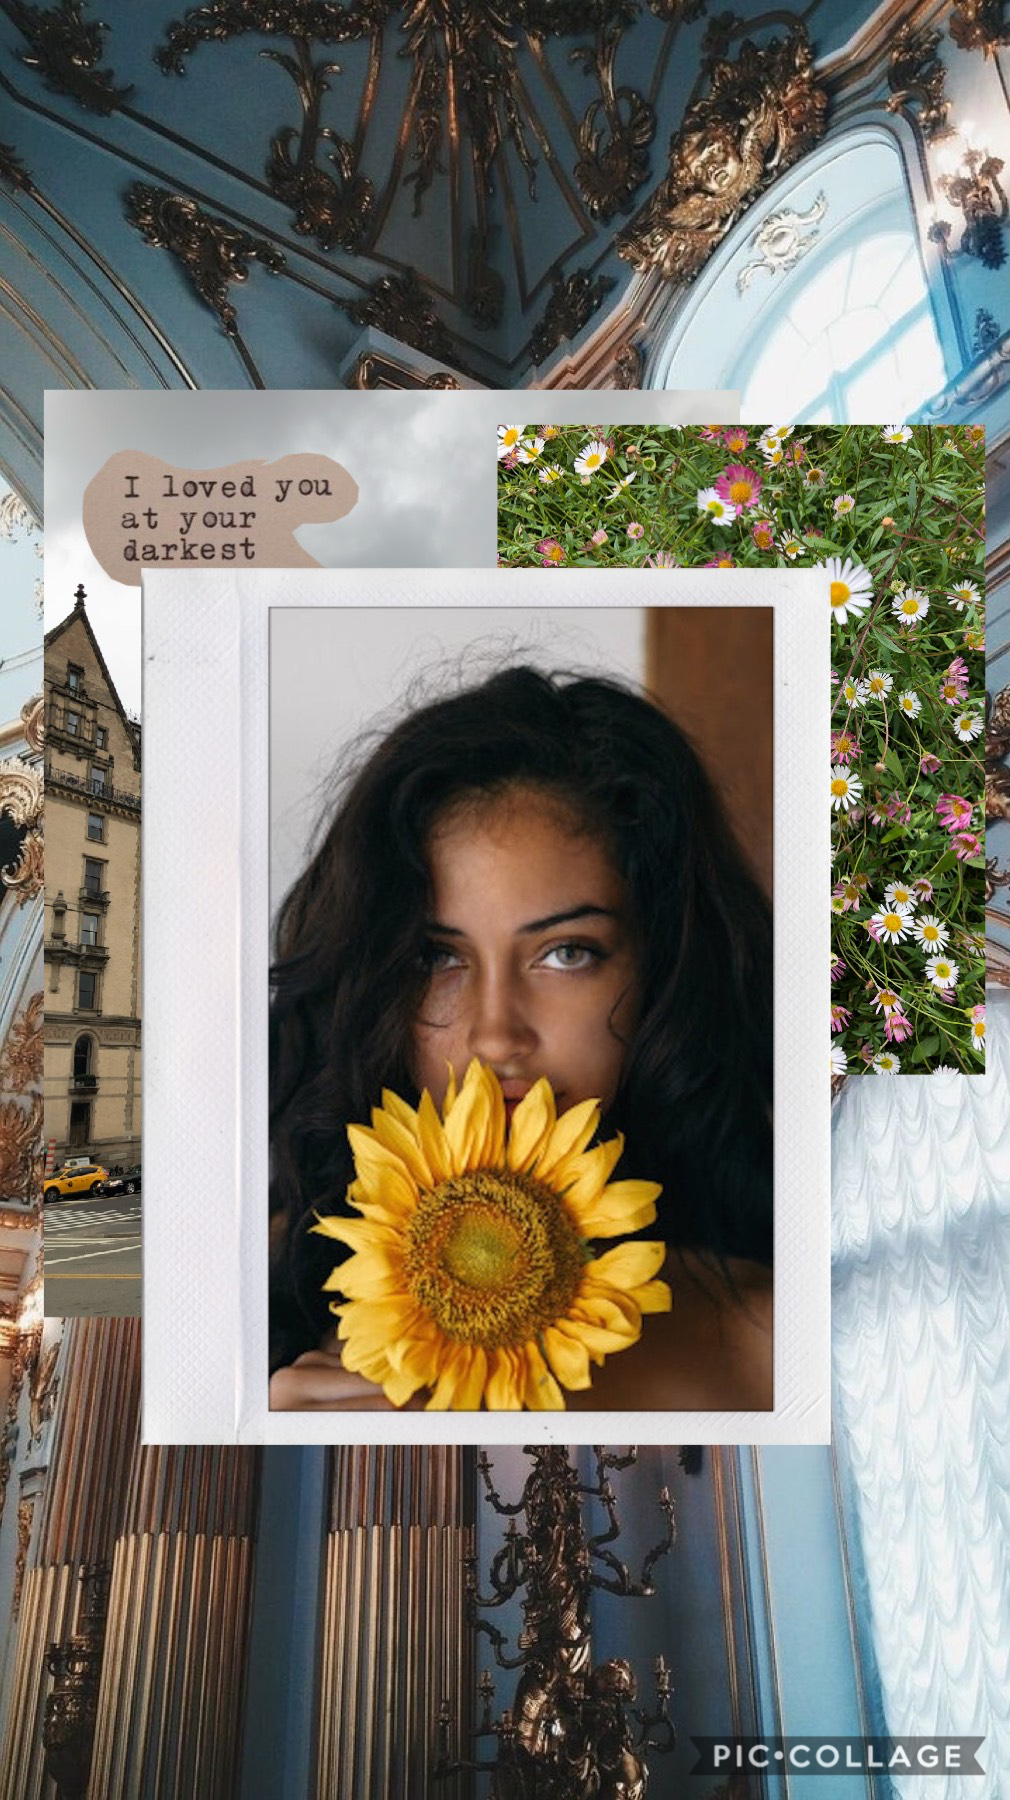 I loved you at your darkest 💖 •QOD: Favorite Food?• — miss you guys —— Need some new friends 🌻